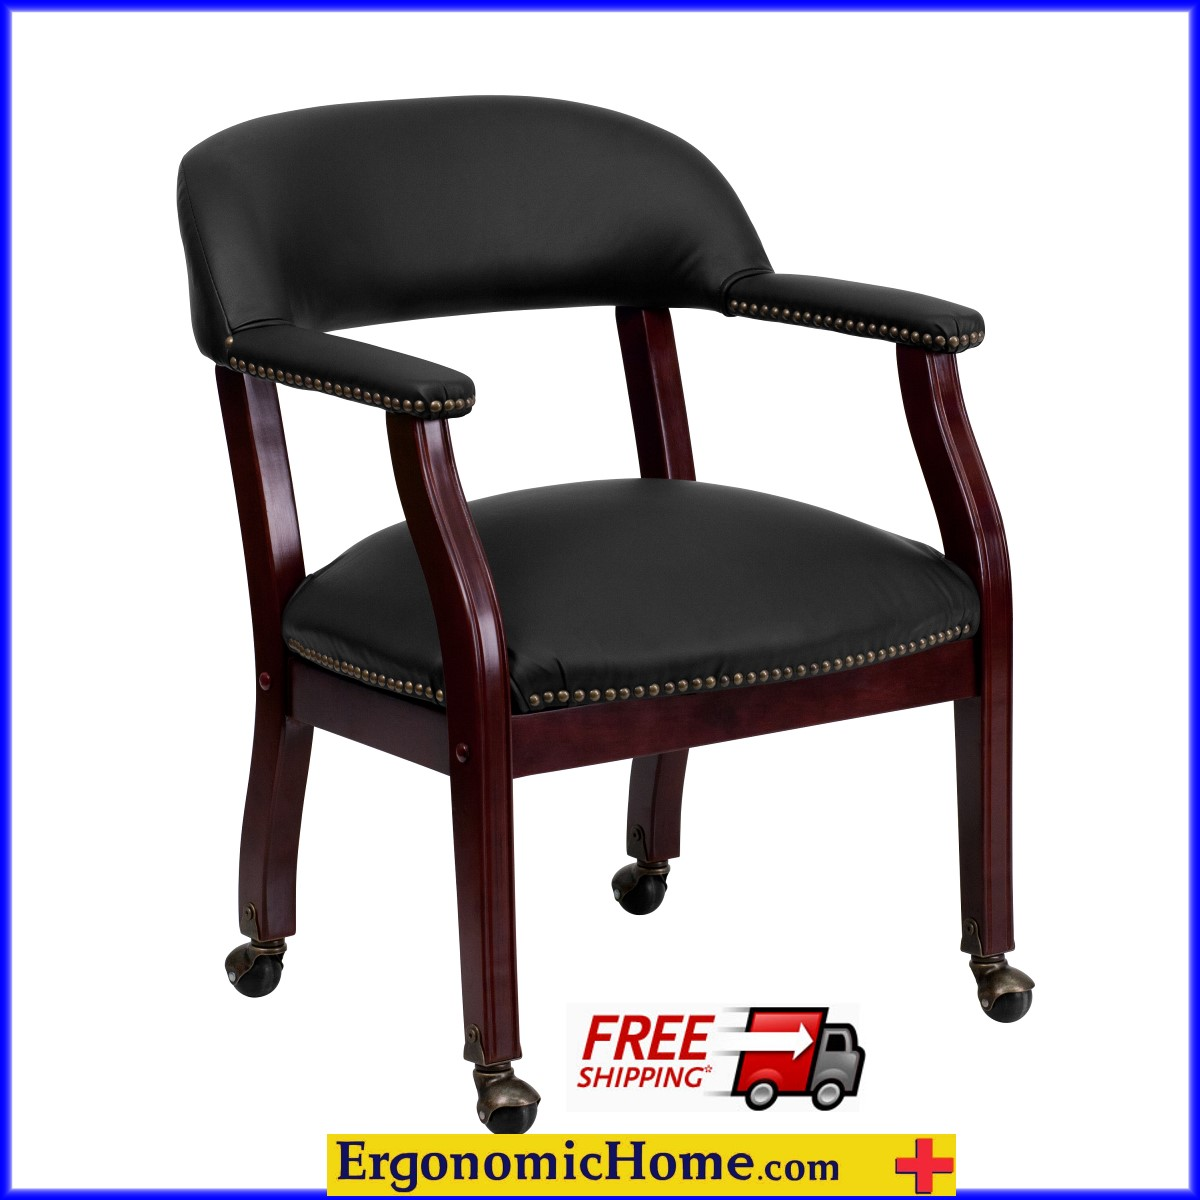 </b></font>Ergonomic Home Black Top Grain Leather Conference Chair/Guest Chair with Casters EH-B-Z100-LF-0005-BK-LEA-GG <b></b></font>  VIDEO BELOW. </b></font></b>